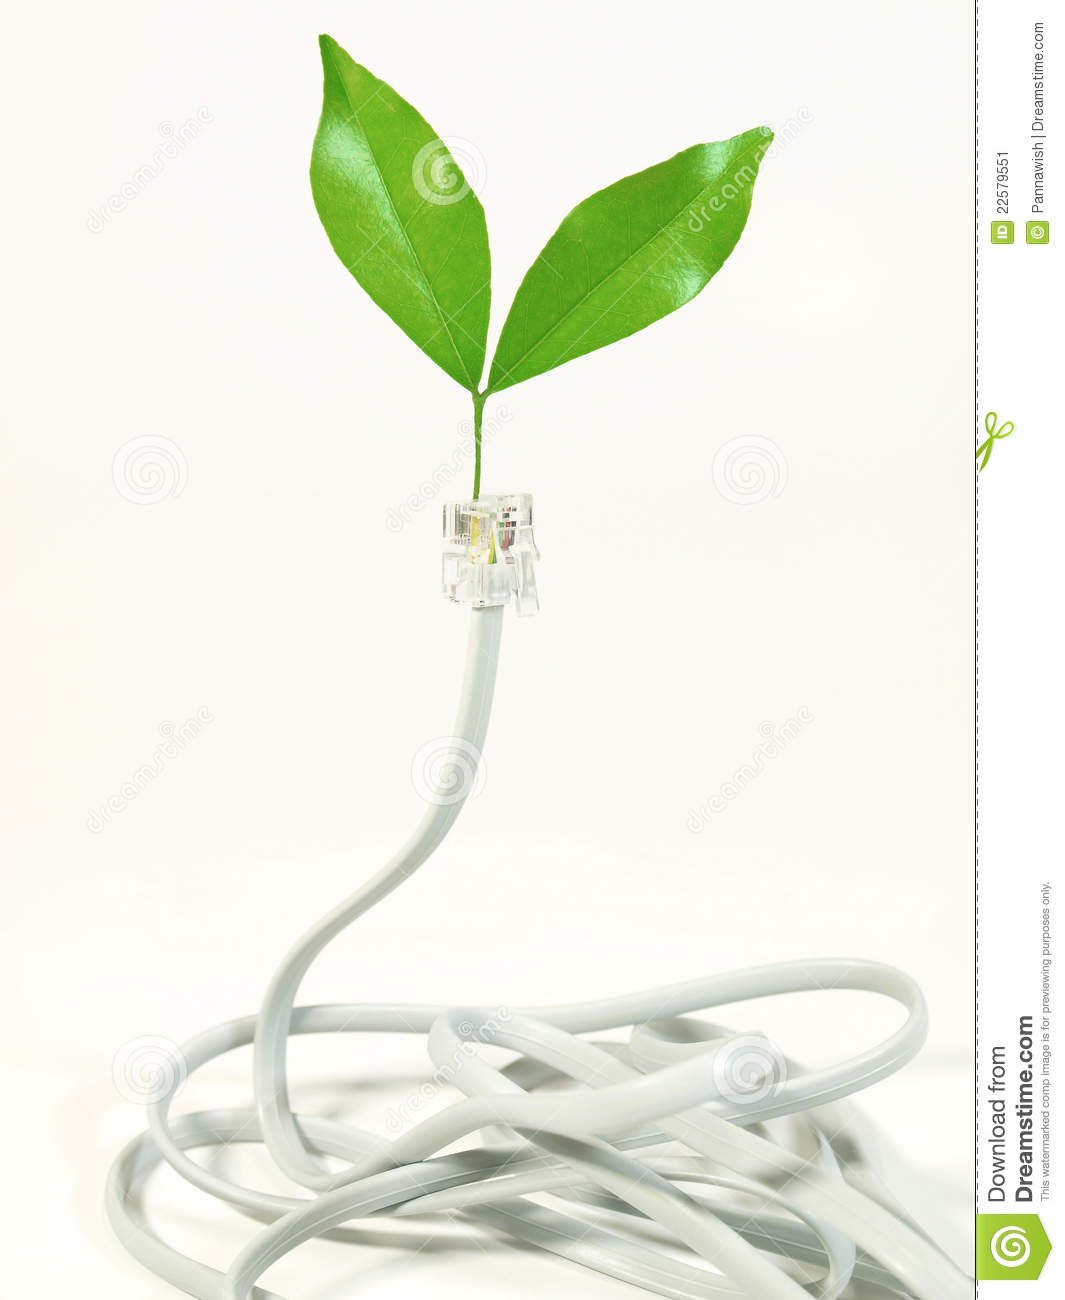 Download Telephone Cable With Leaf On Plug Stock Image - Image of connection, growth: 22579551